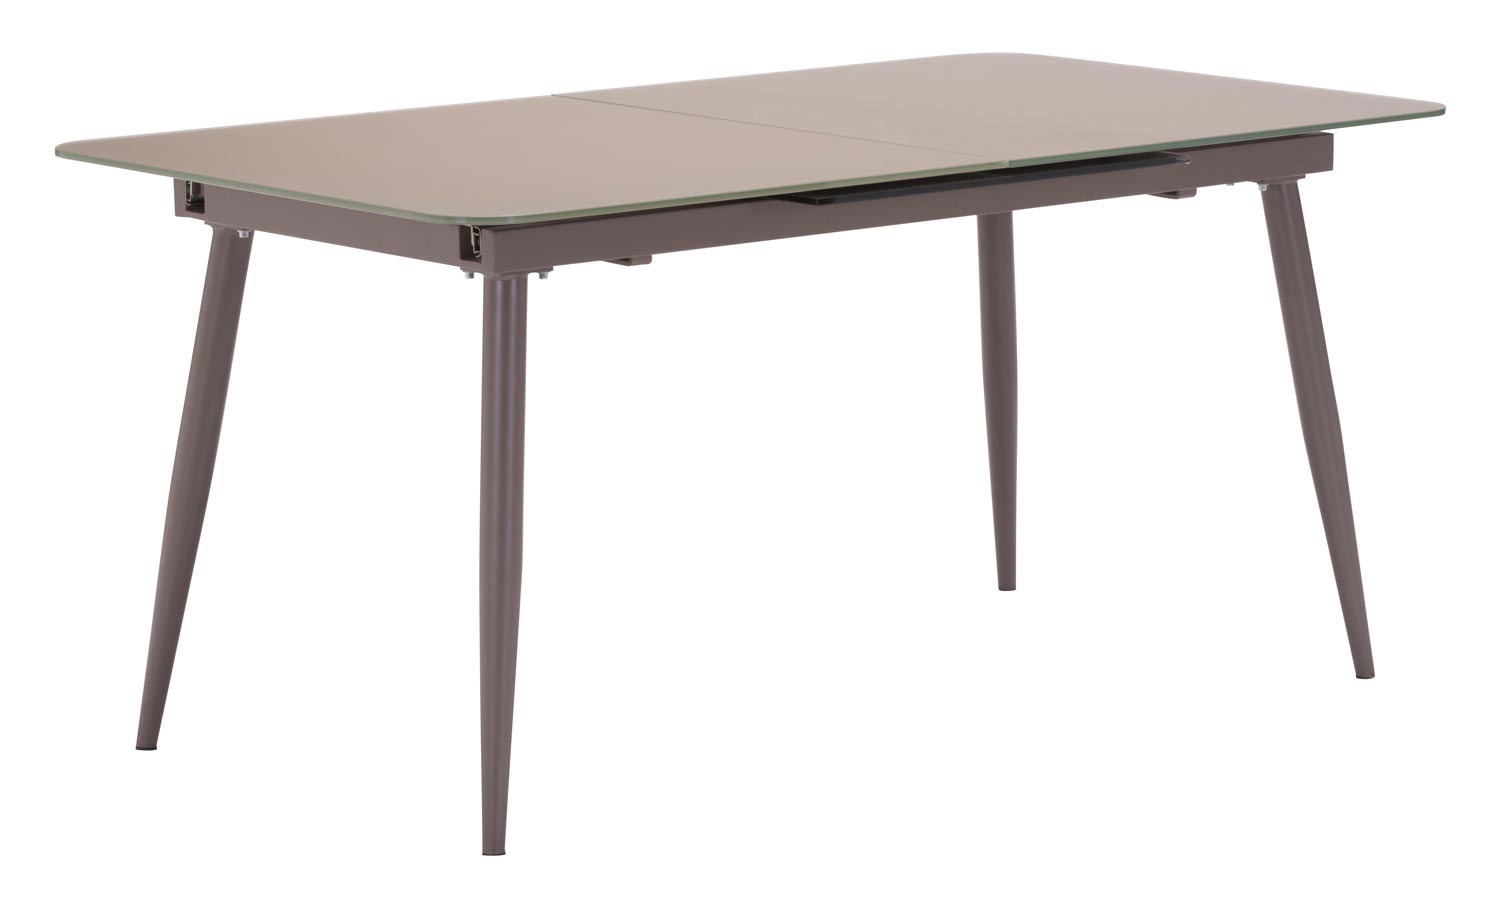 Zuo Modern Mercier Extension Dining Table Mocha ZM 102132 At